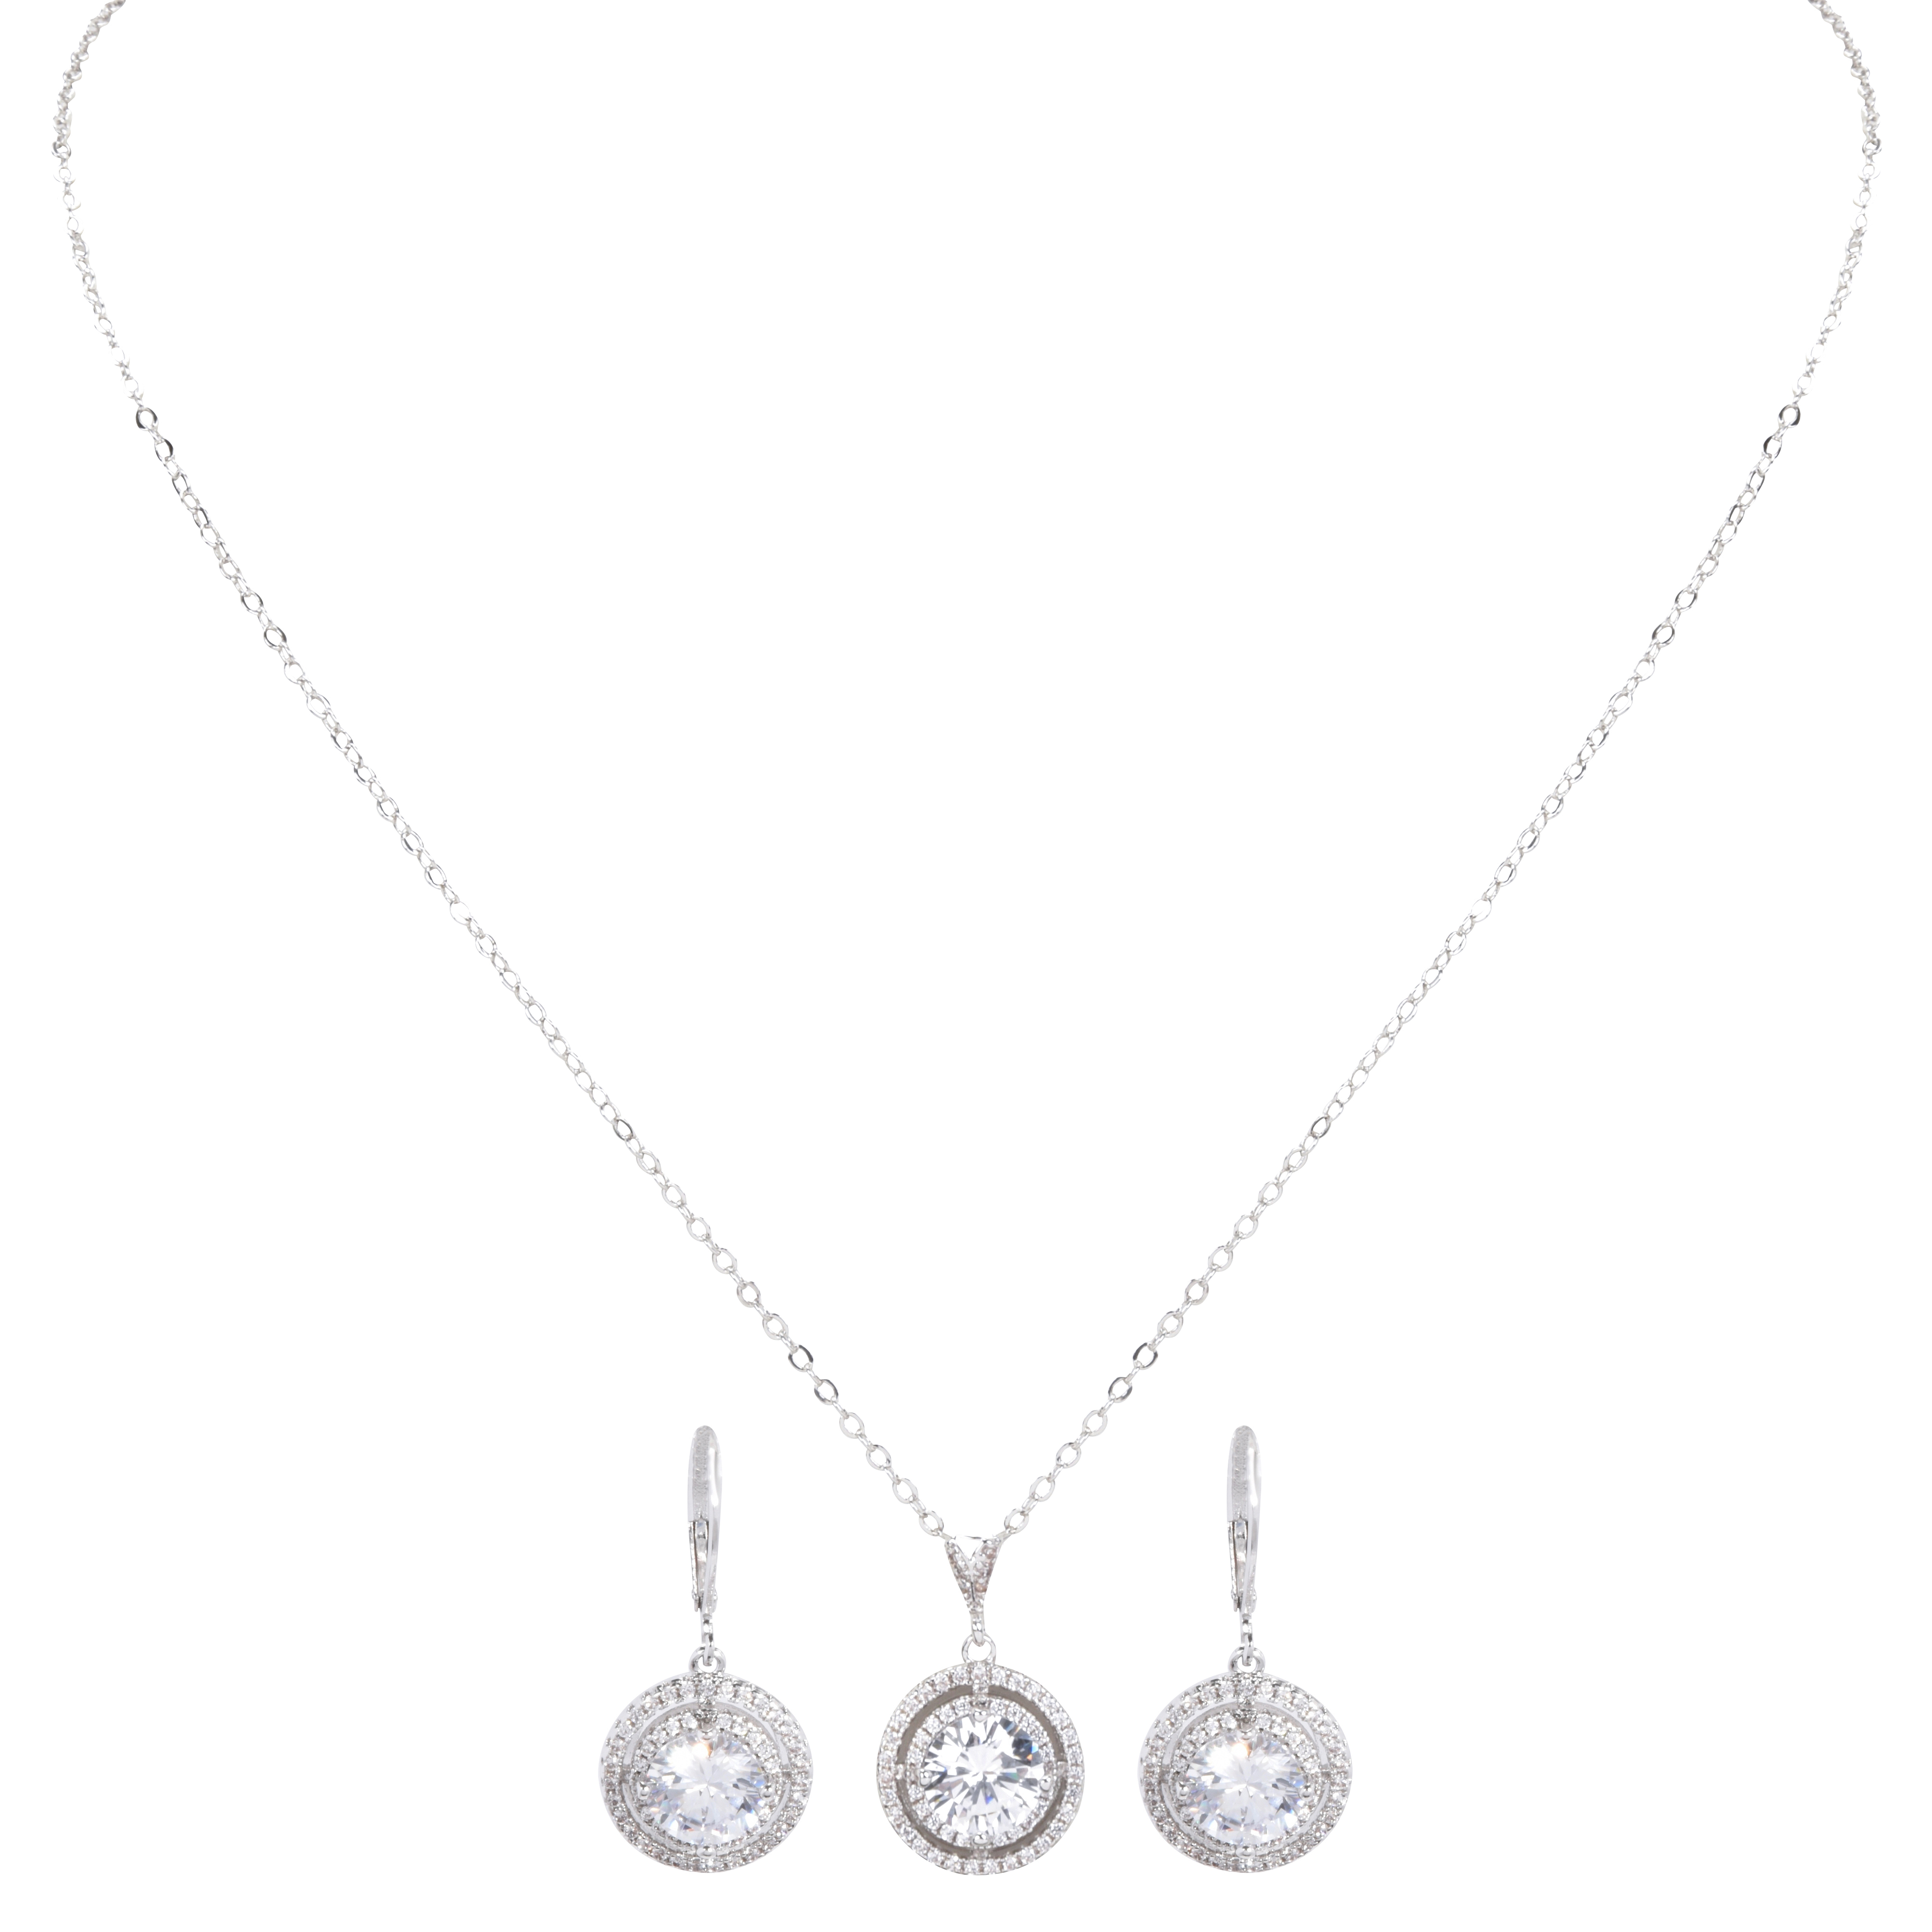 Ezi Cz Cubic Zirconia Solitaire Brilliant Round Halo Pendant Necklace & Hoop Drop Earrings Women'S Costume Jewelry Set Throughout Best And Newest Round Sparkle Halo Pendant Necklaces (View 13 of 25)